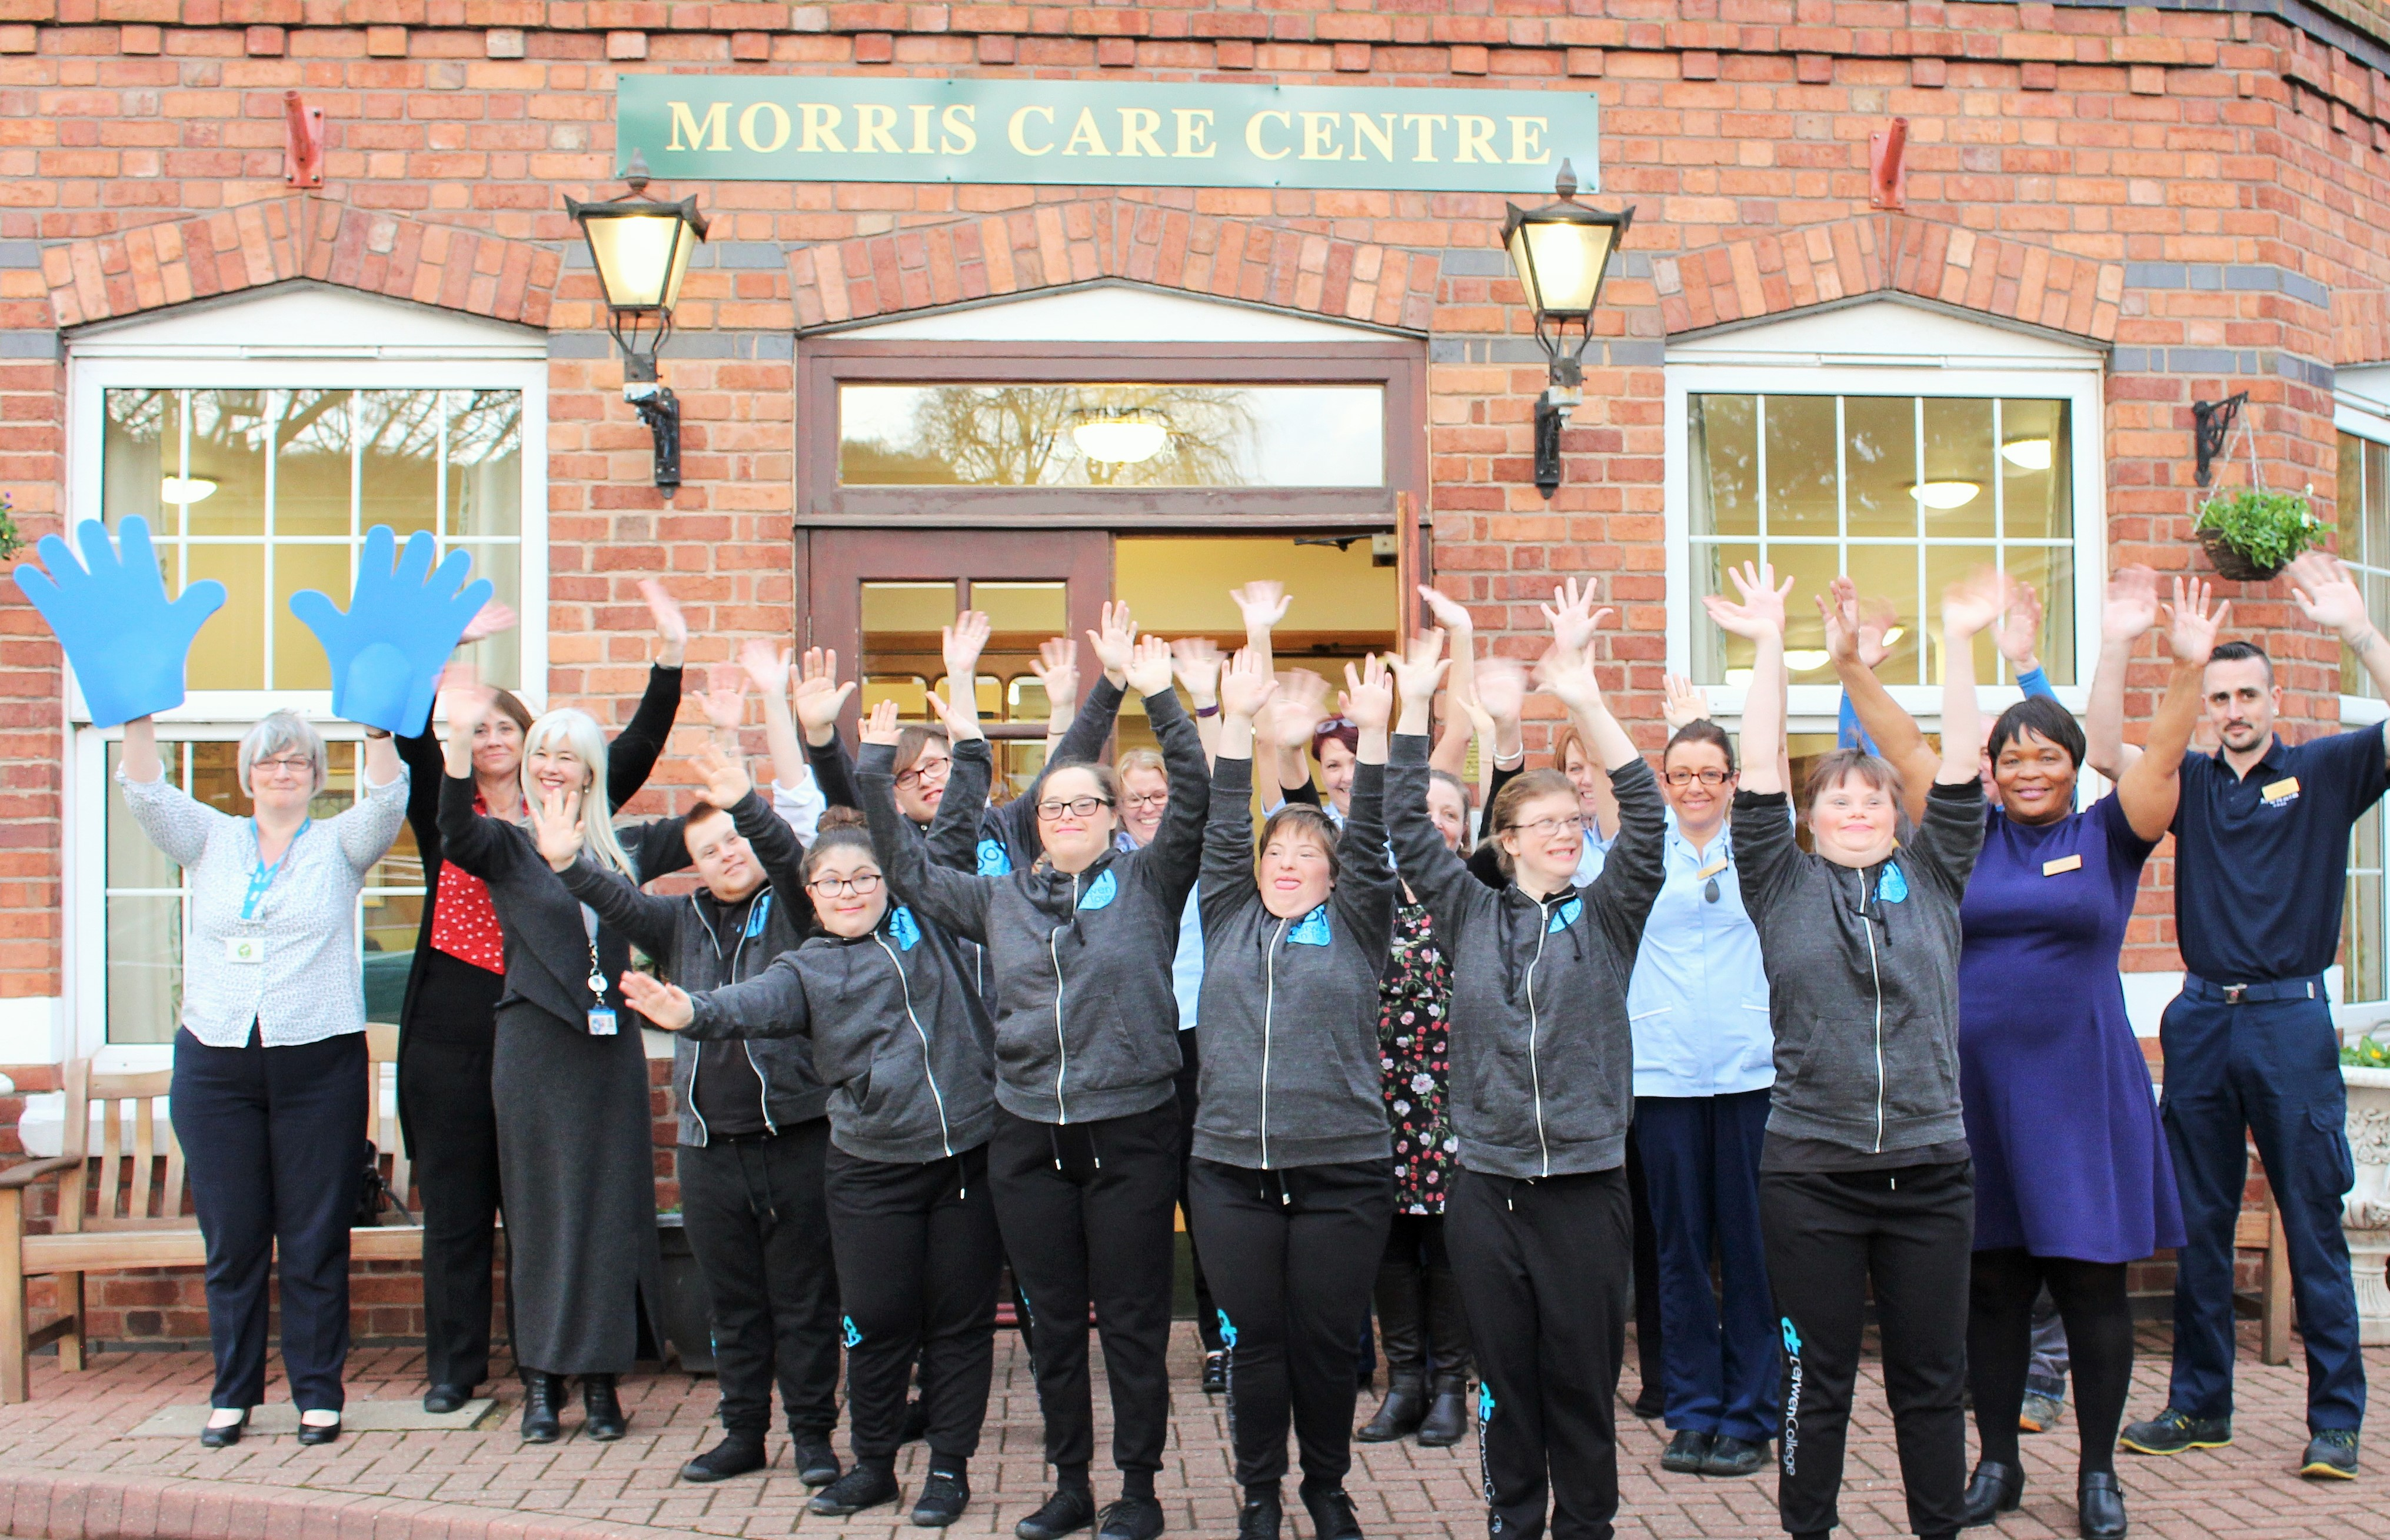 Derwen on Tour - Making waves for dignity at Morris Care Centre